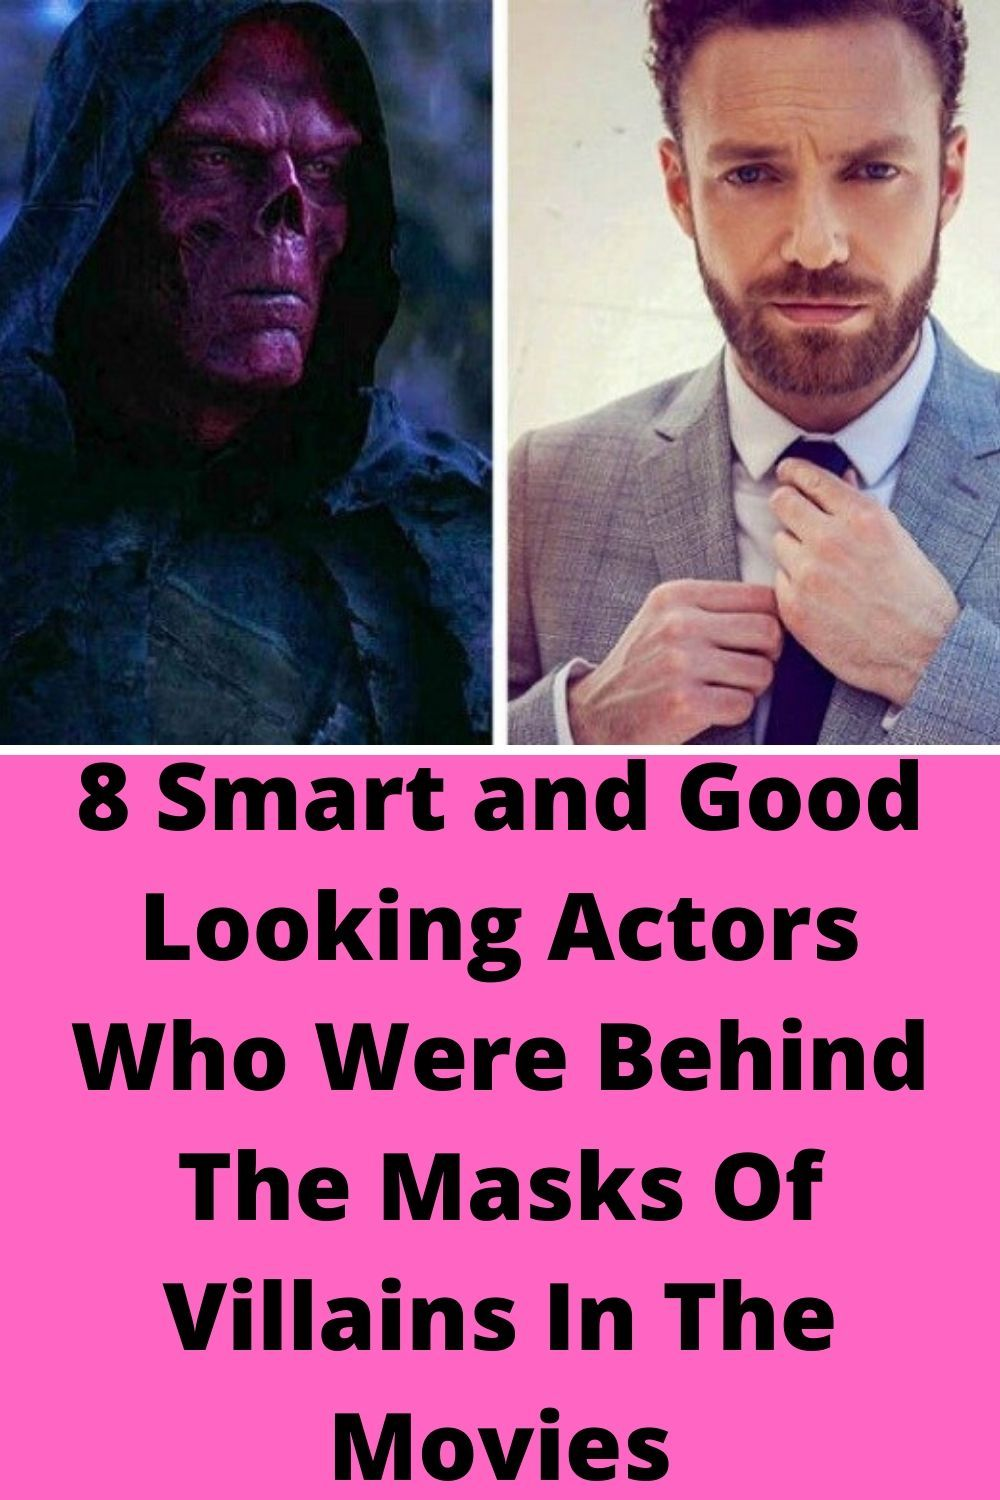 8 Smart and Good Looking Actors Who Were Behind The Masks Of Villains In The Movies